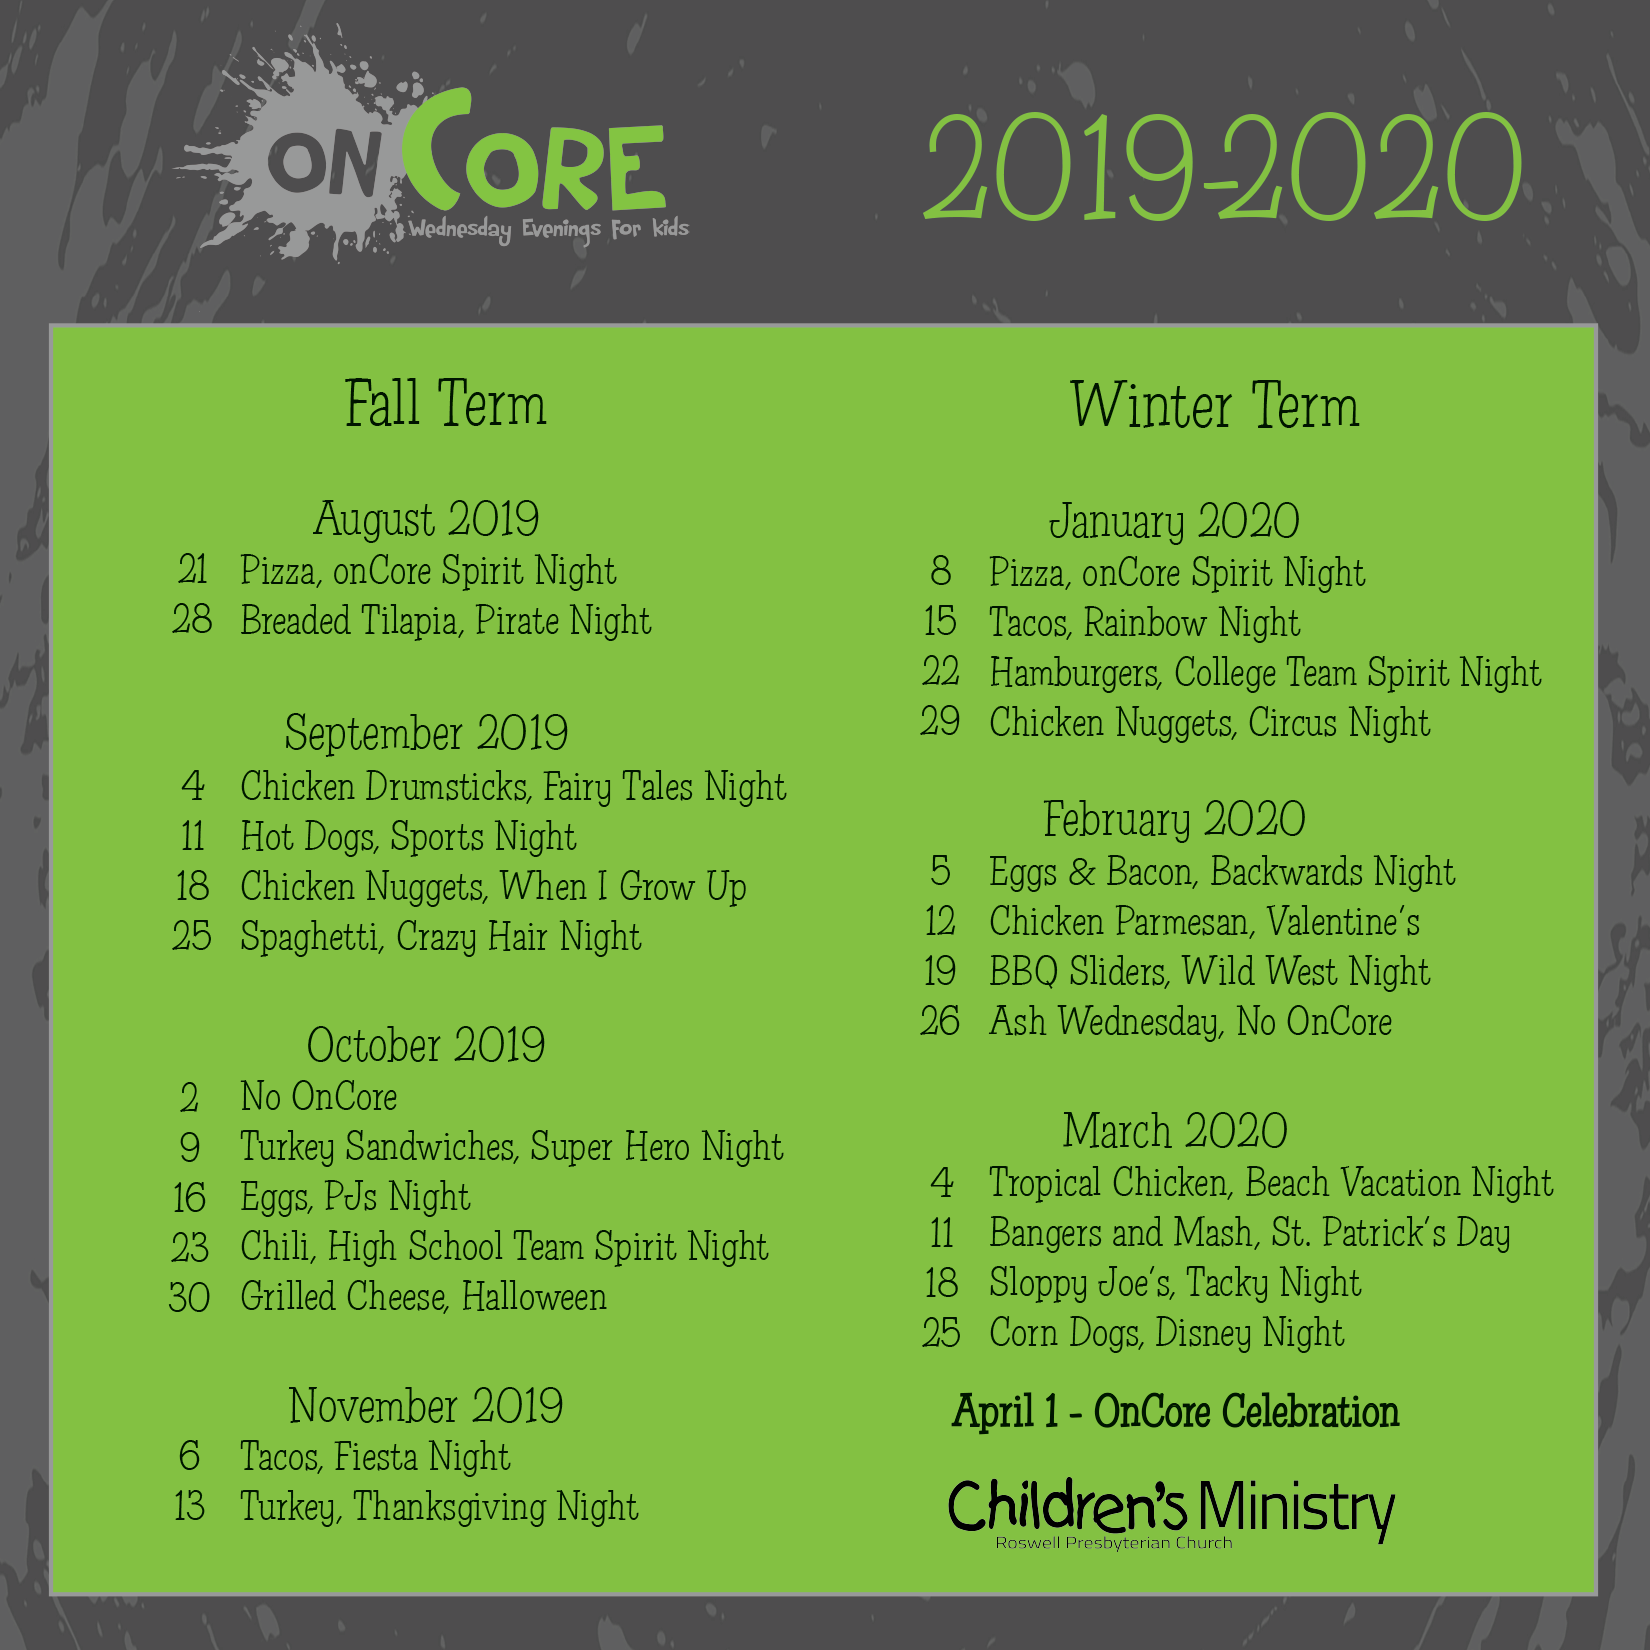 19_Q3_011 - onCore 2019-2020 Full Term Cling.png